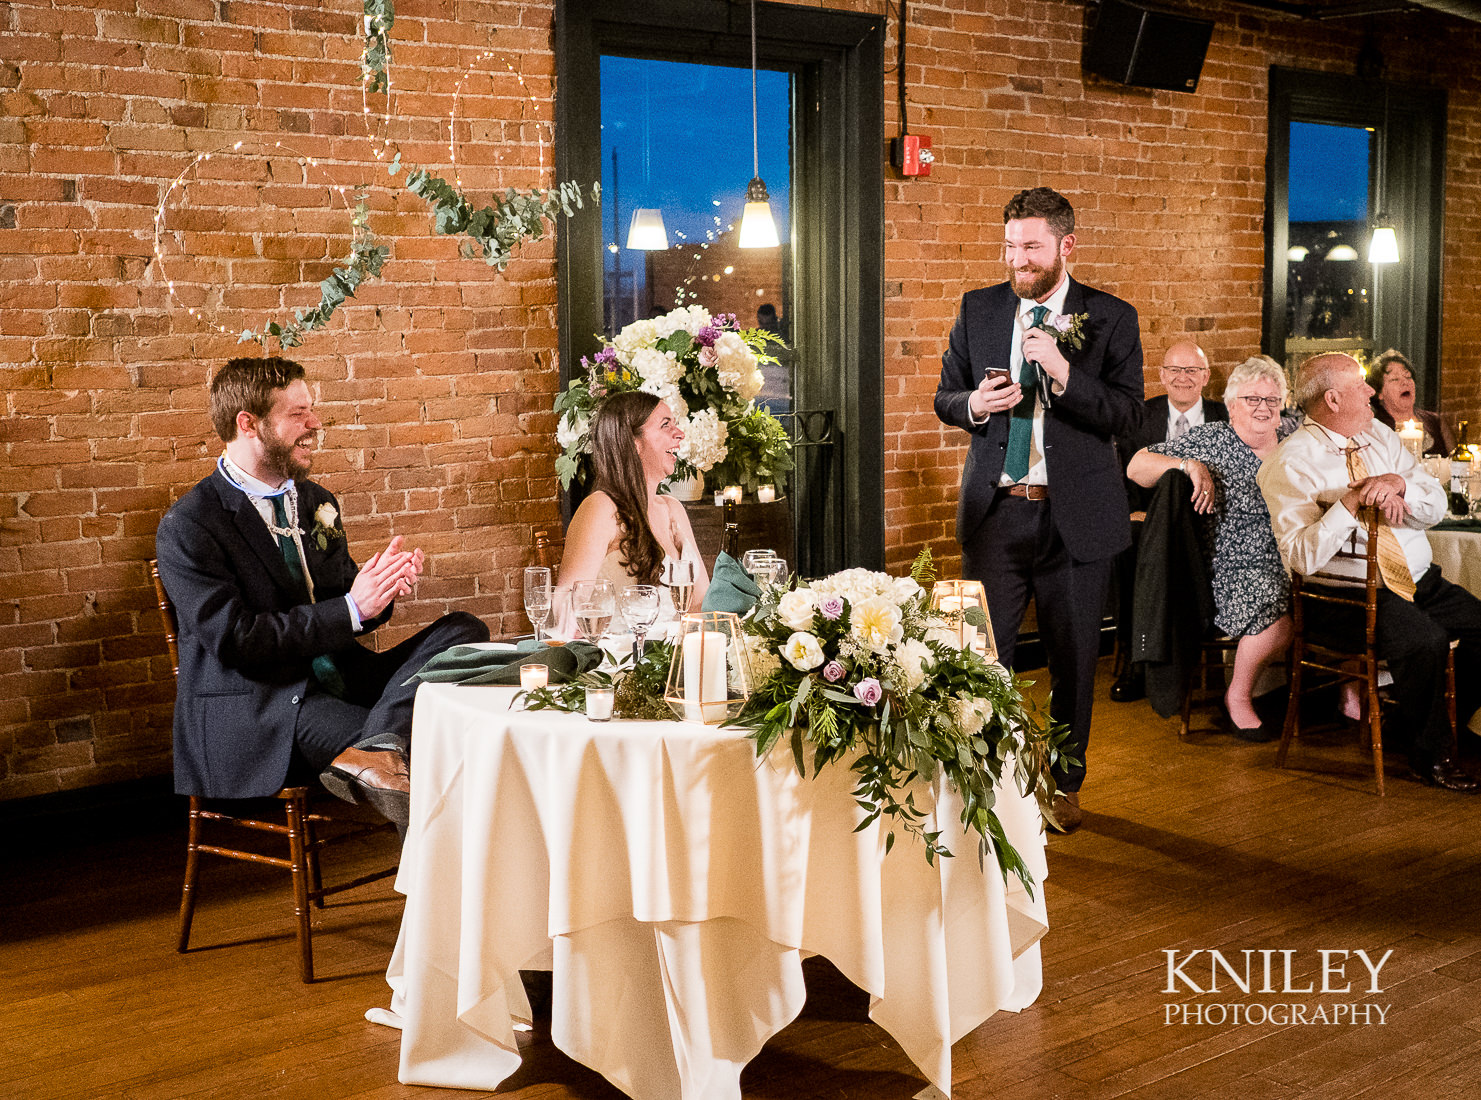 51-Pearl-St-Grill-Wedding-Reception-Buffalo-NY-Kniley-Photography.jpg